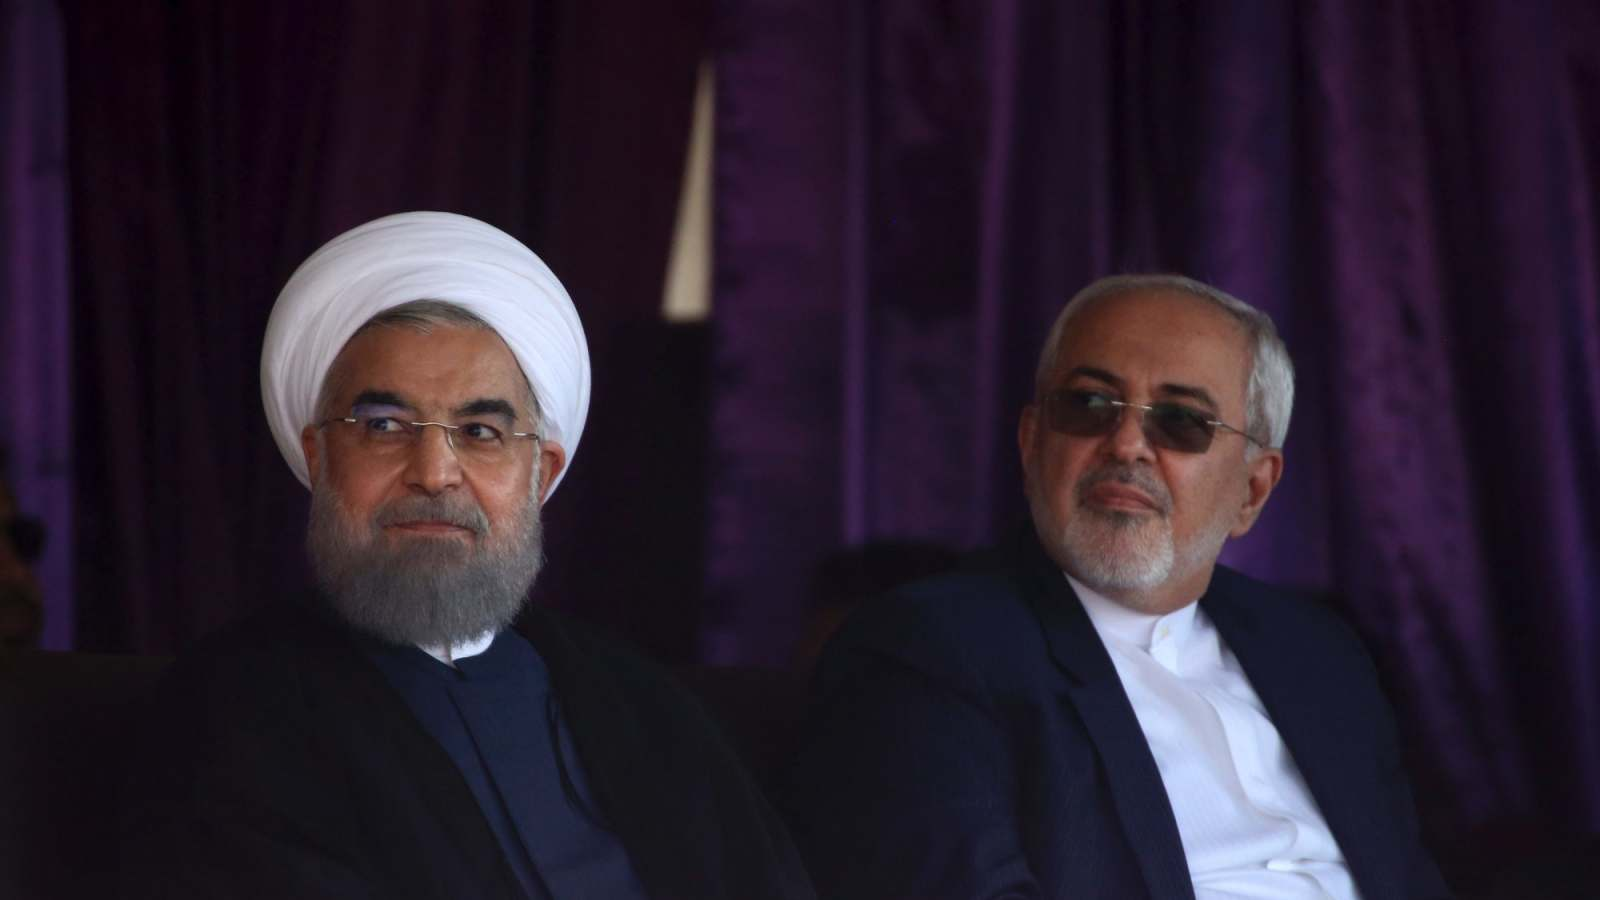 Iranian President Hassan Rouhani, left, with his Foreign Minister Mohammad Javad Zarif.